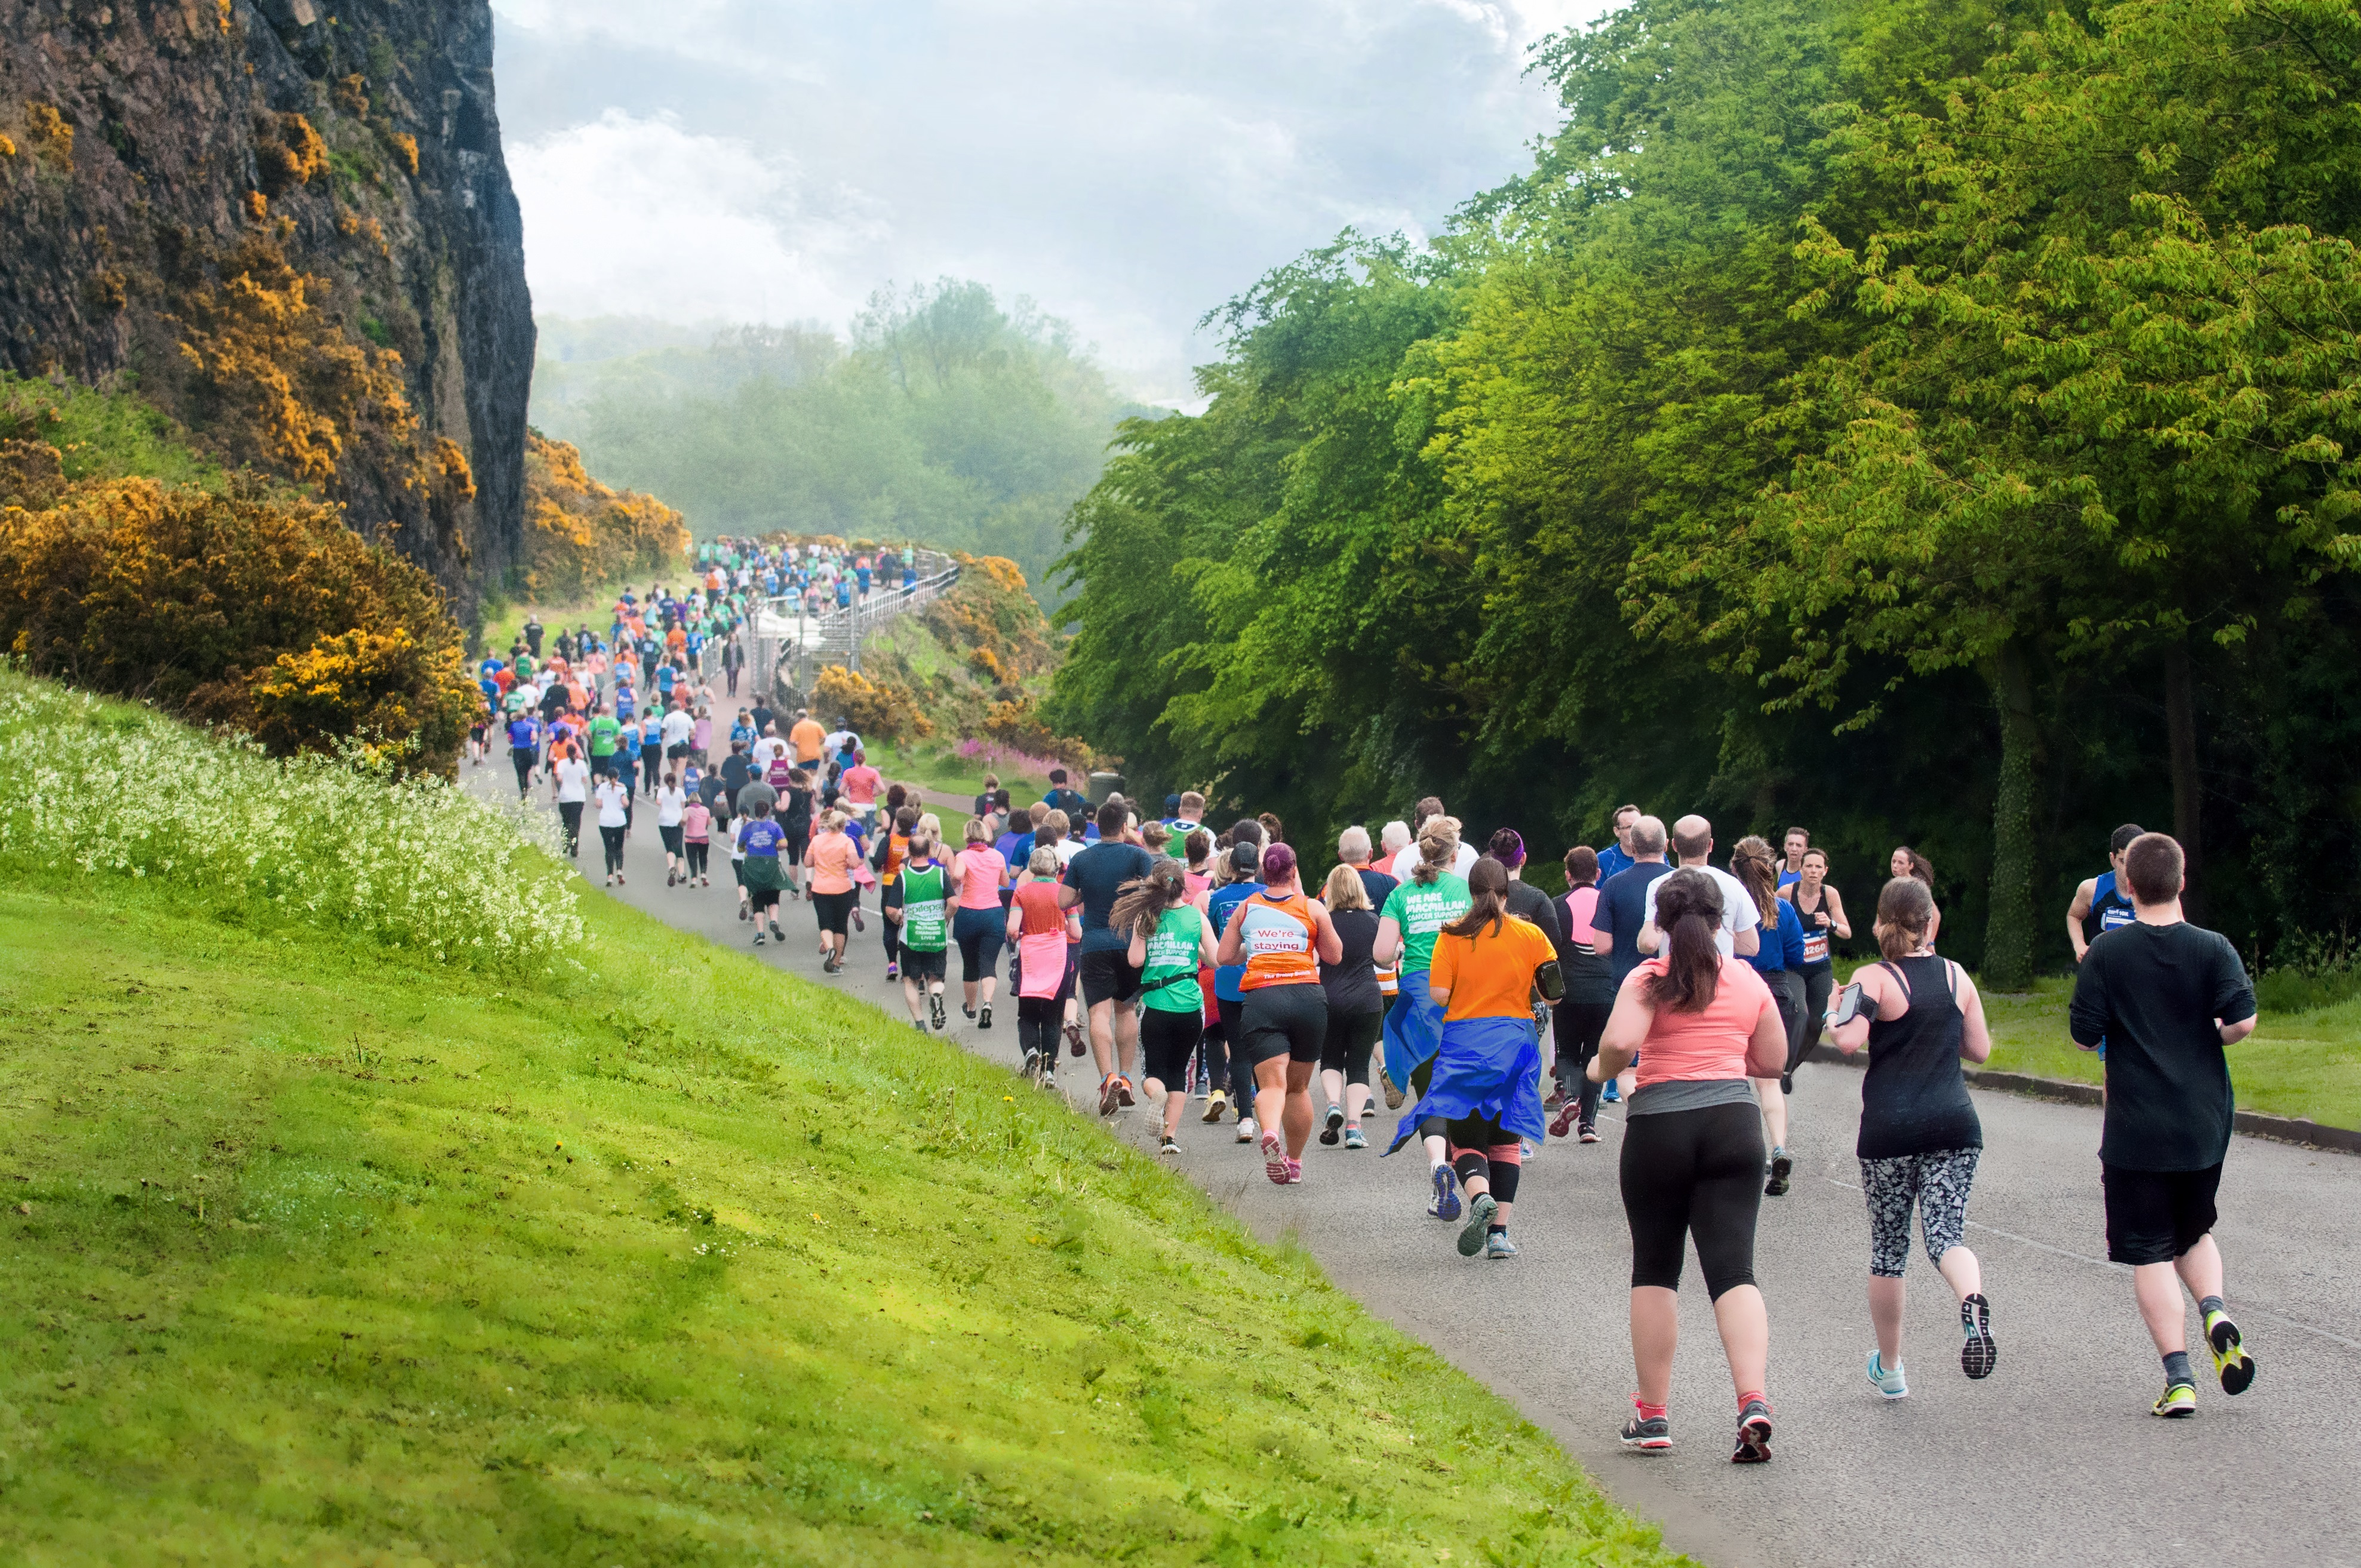 Runners in the Edinburgh Marathon at Arthur Seat